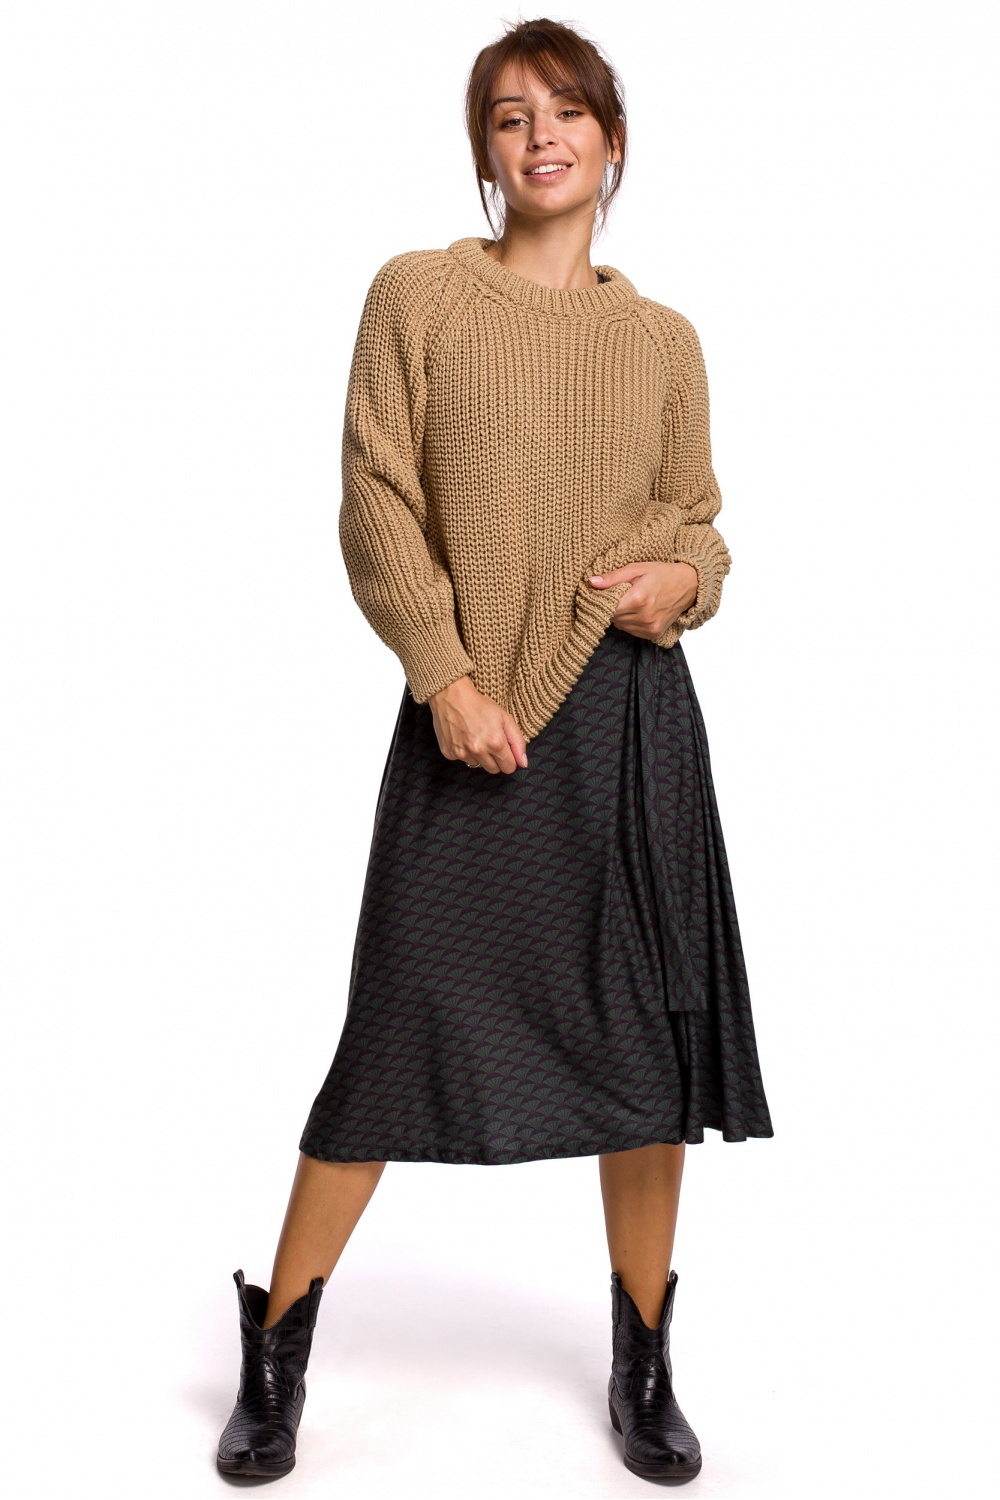 Pulover model 148280 BE Knit